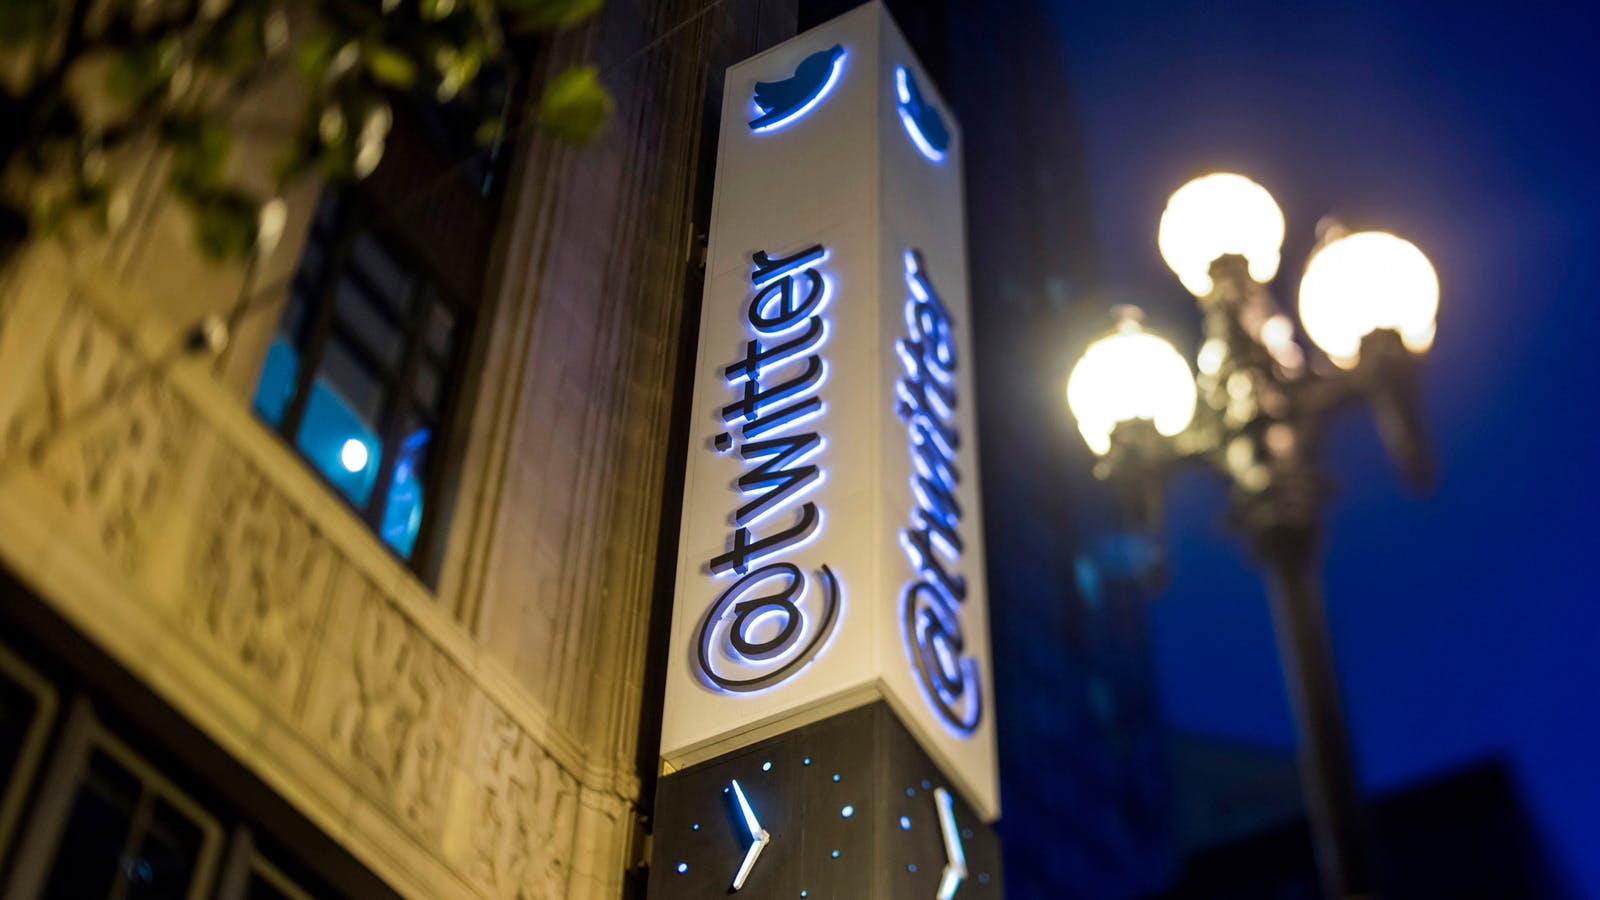 Twitter's San Francisco headquarters. Photo by Bloomberg.